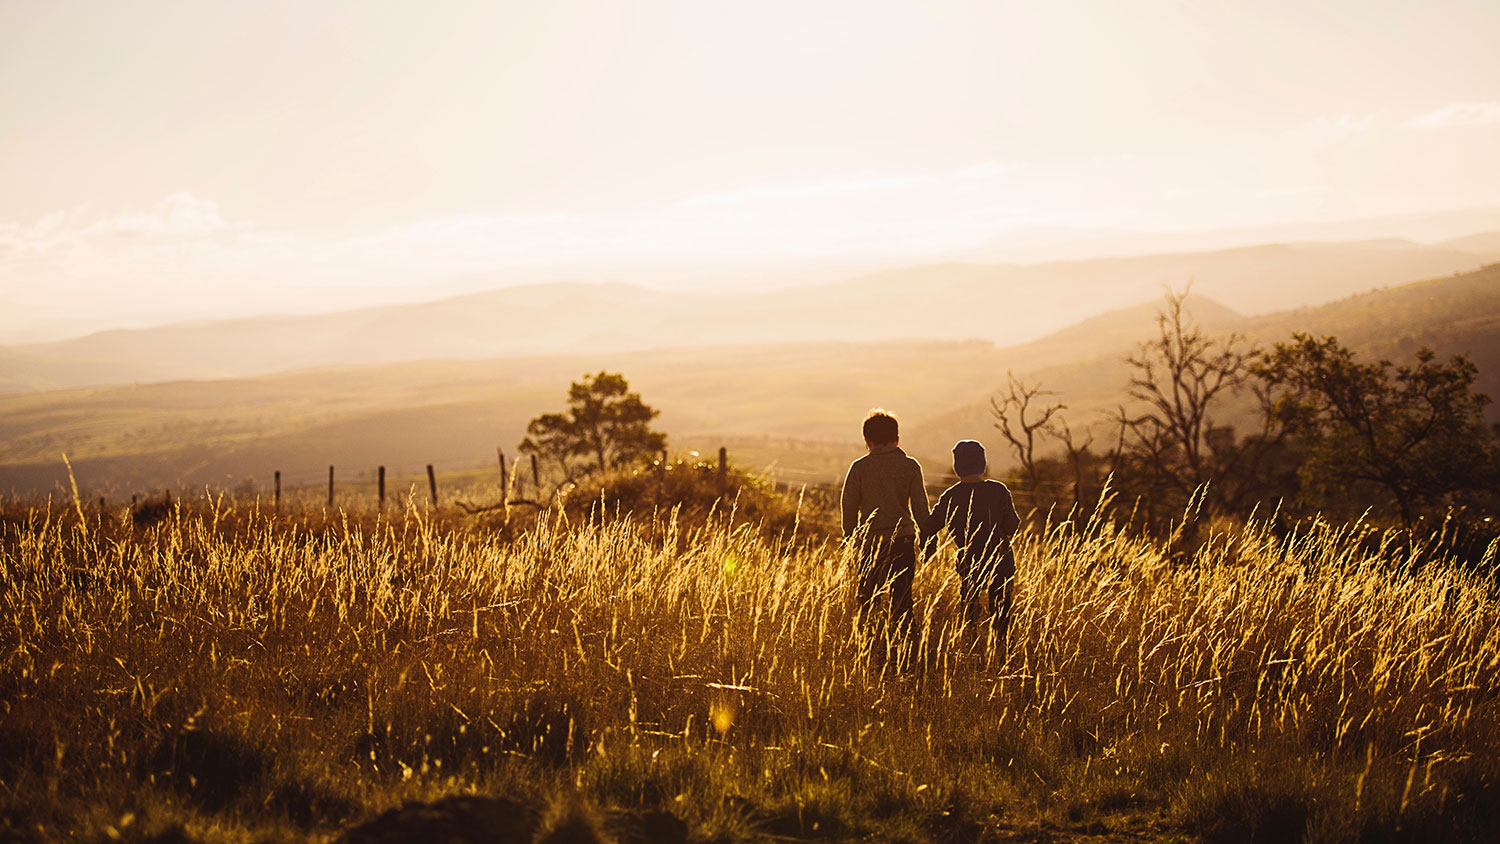 Two children walking in a field at dusk